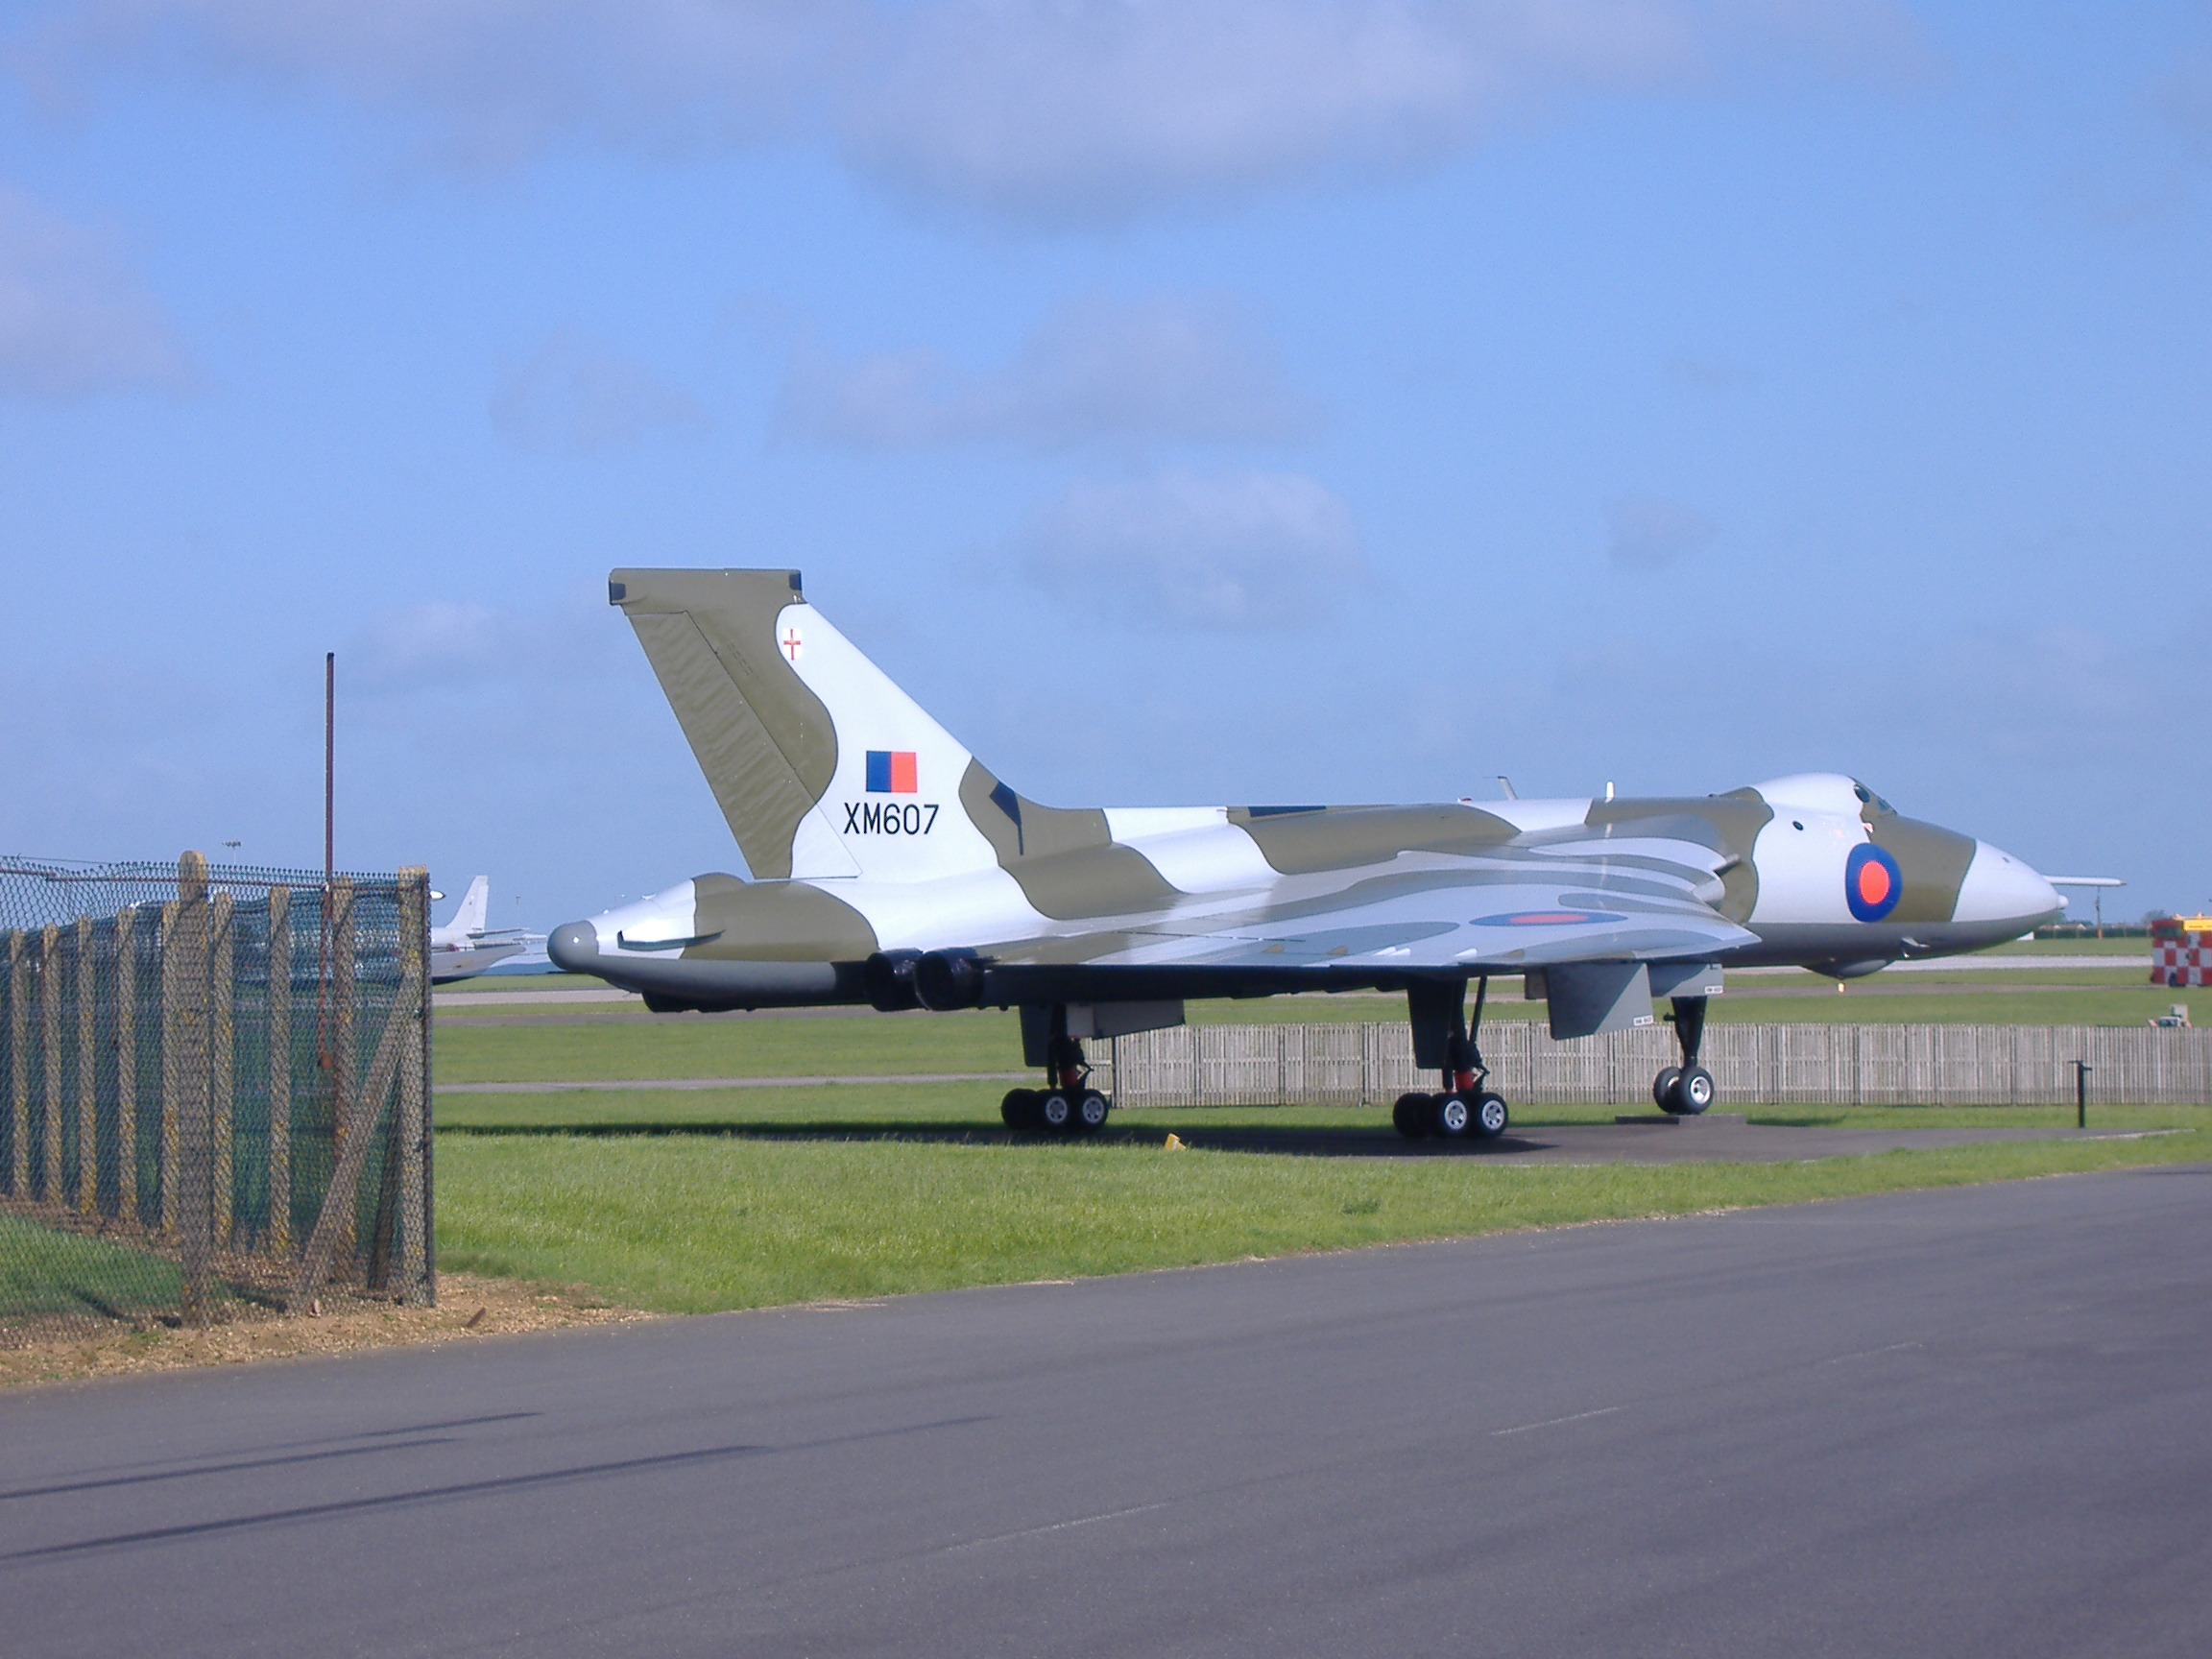 XM607, the first Vulcan to participate in Black Buck, photographed at Waddington on May 19, 2007.